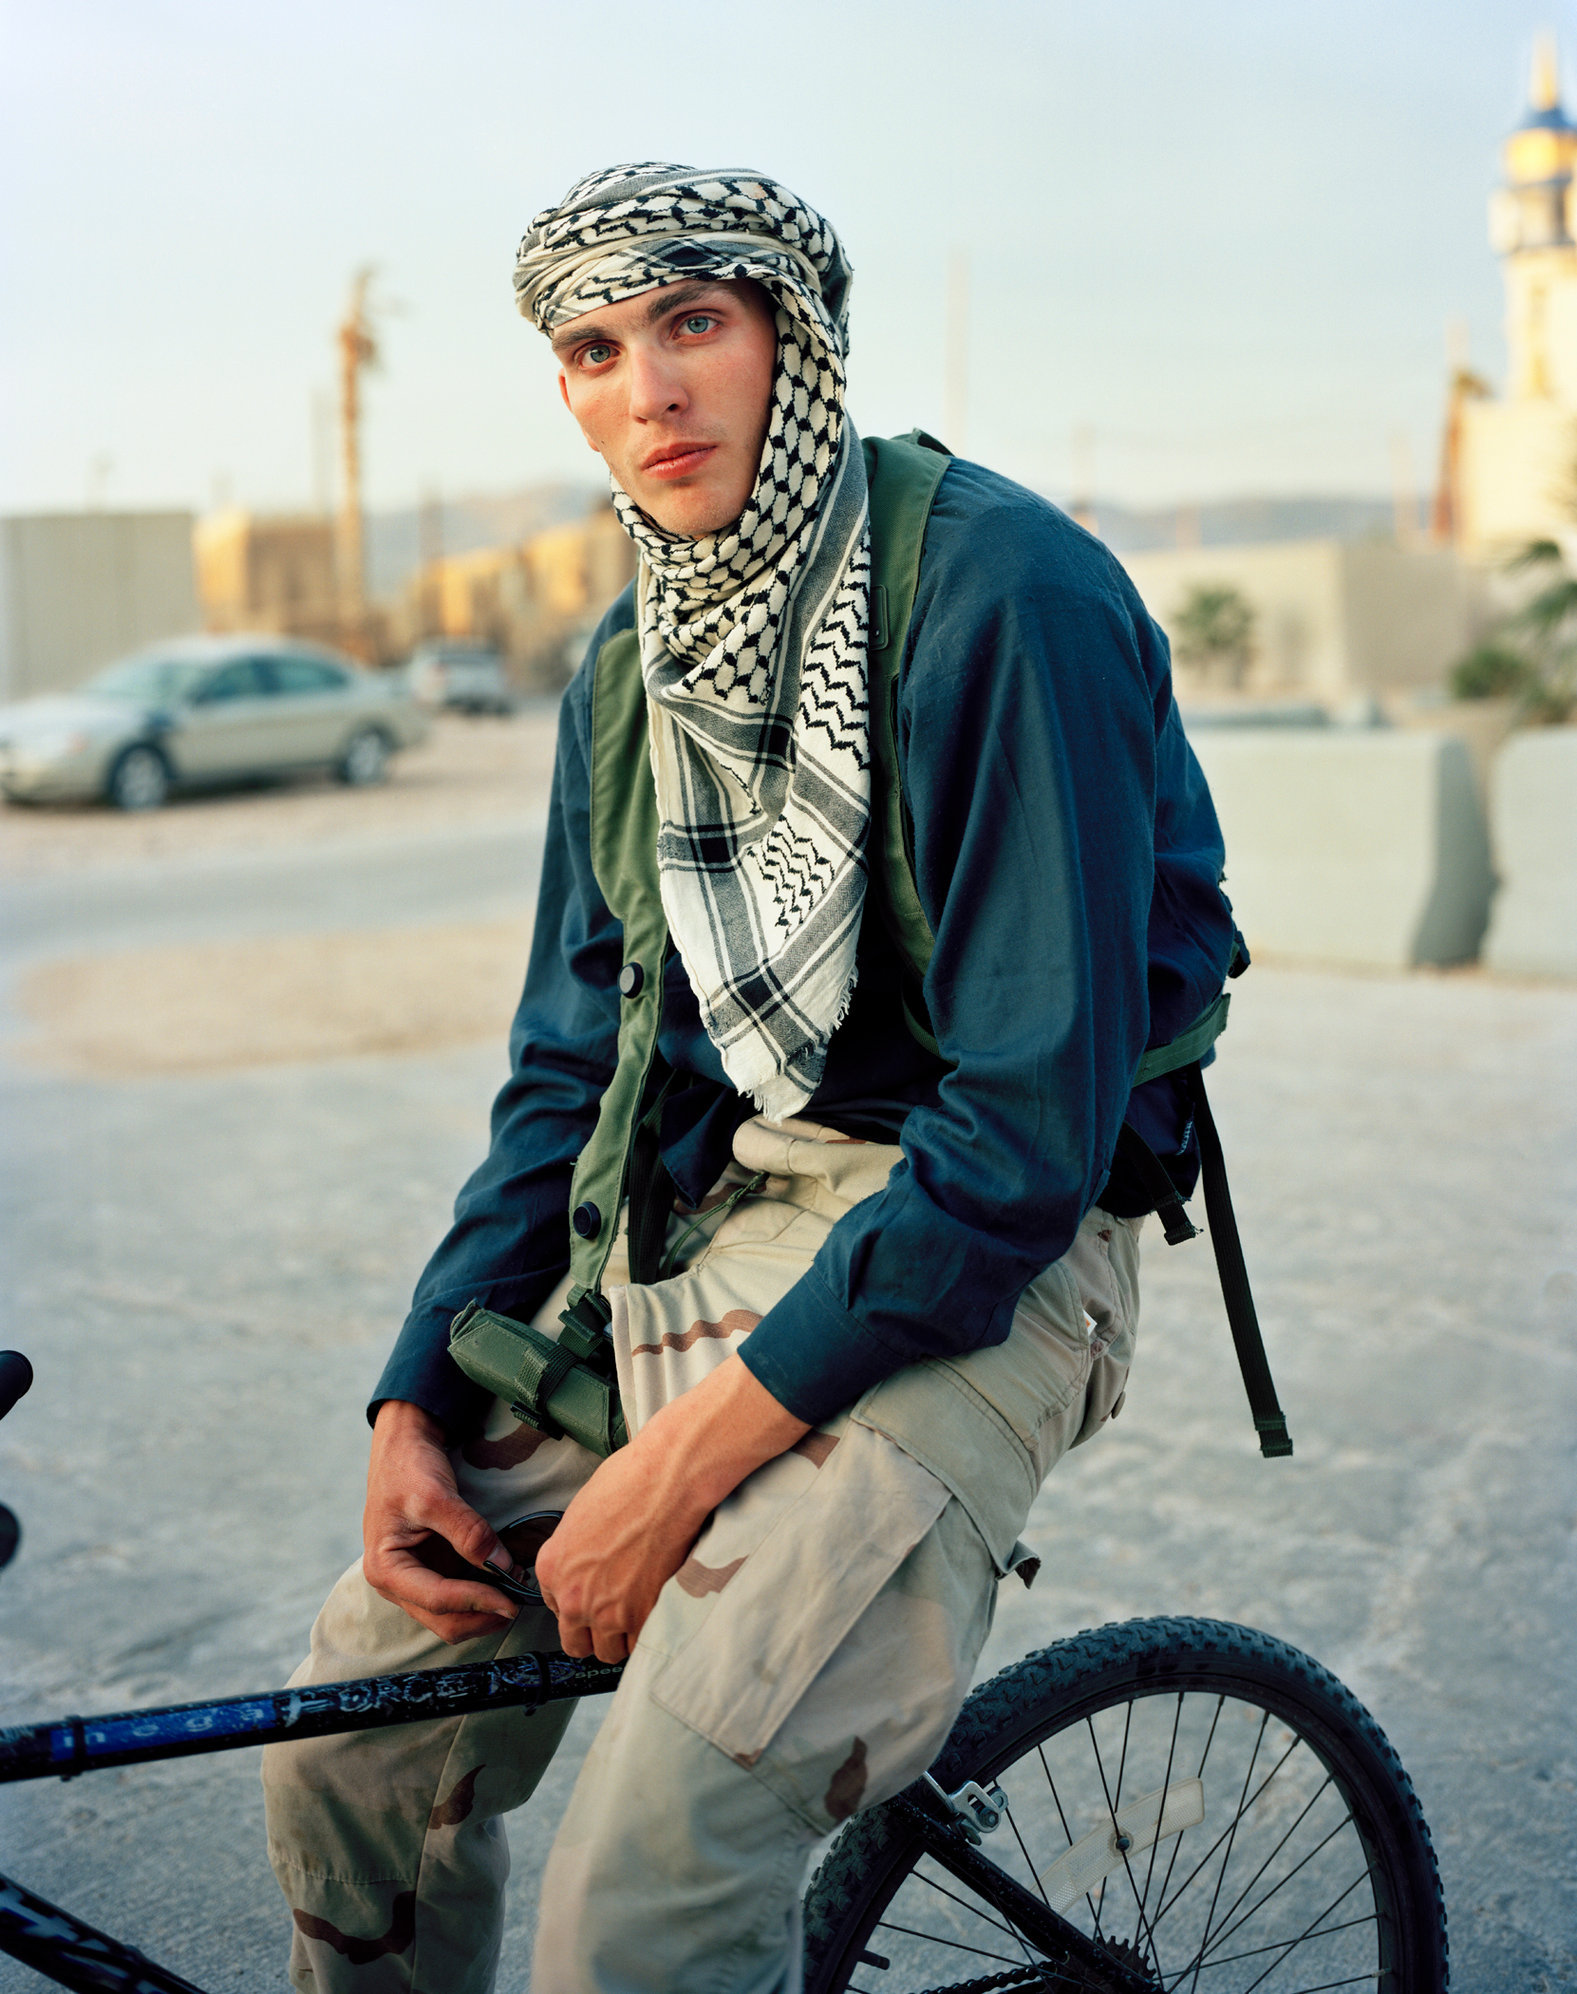 06_Beckett_jihadi_Bike.jpg